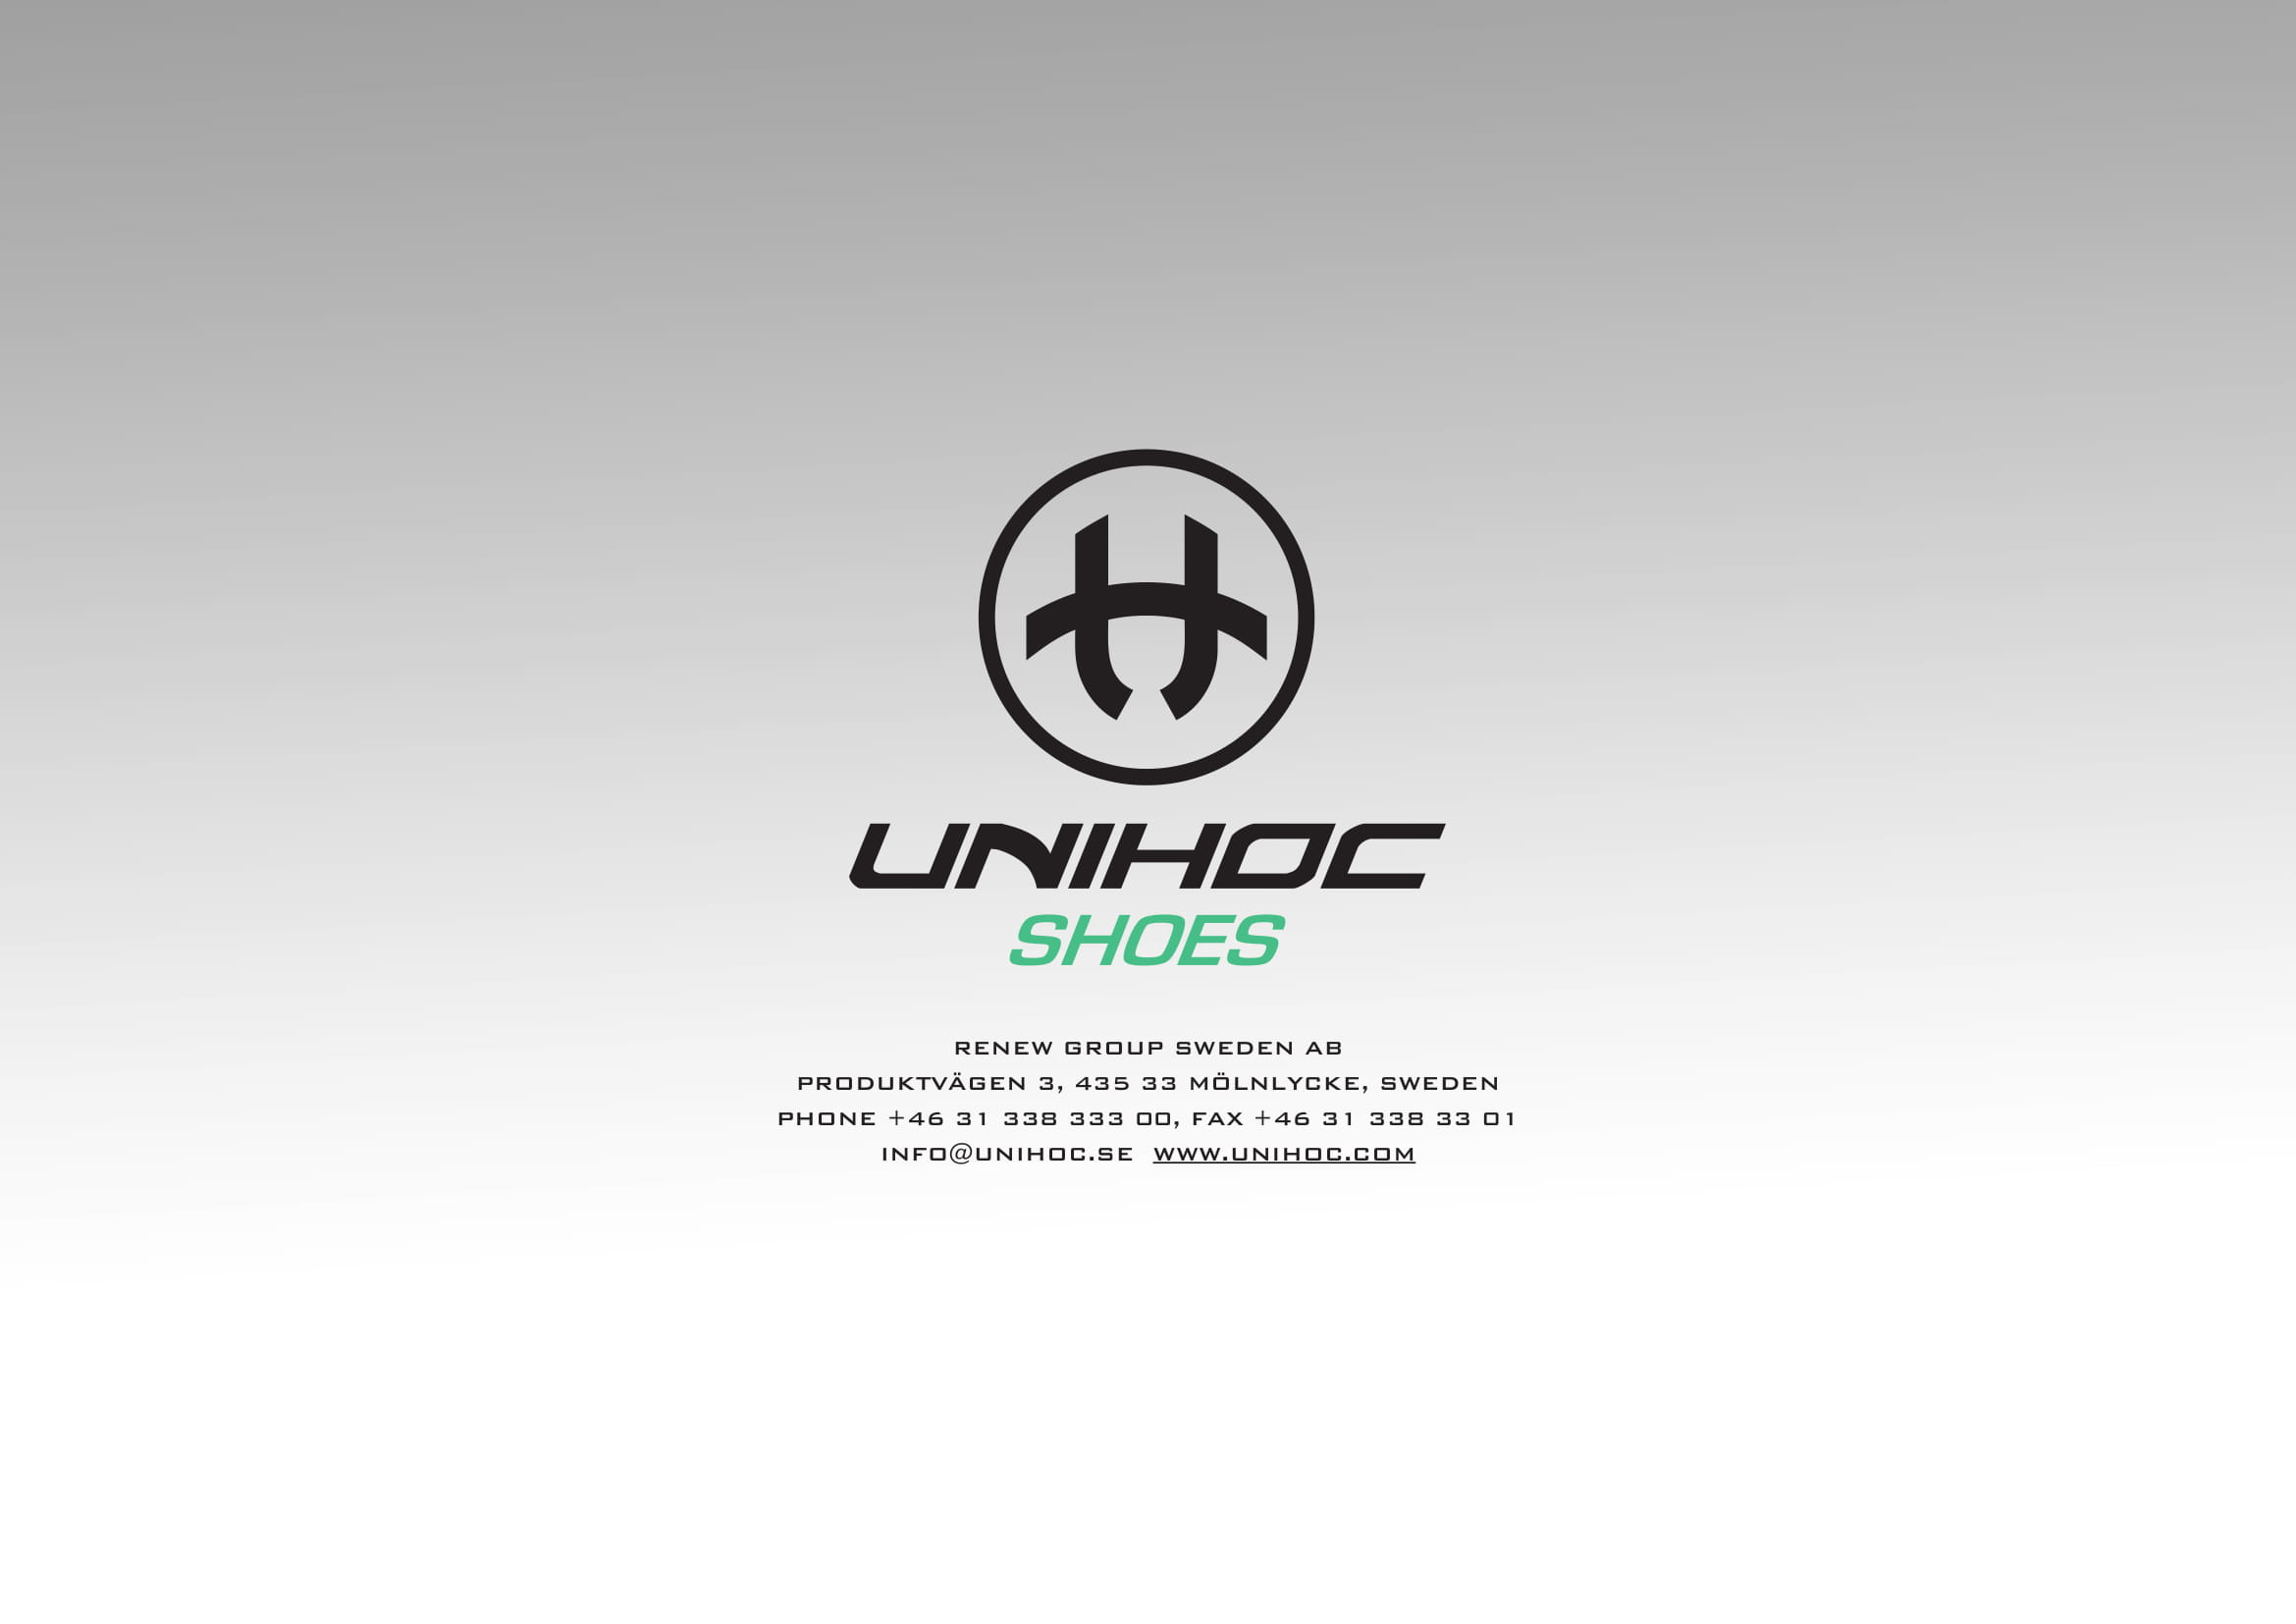 UNIHOC SHOES FOLDER 19-20-12.jpg